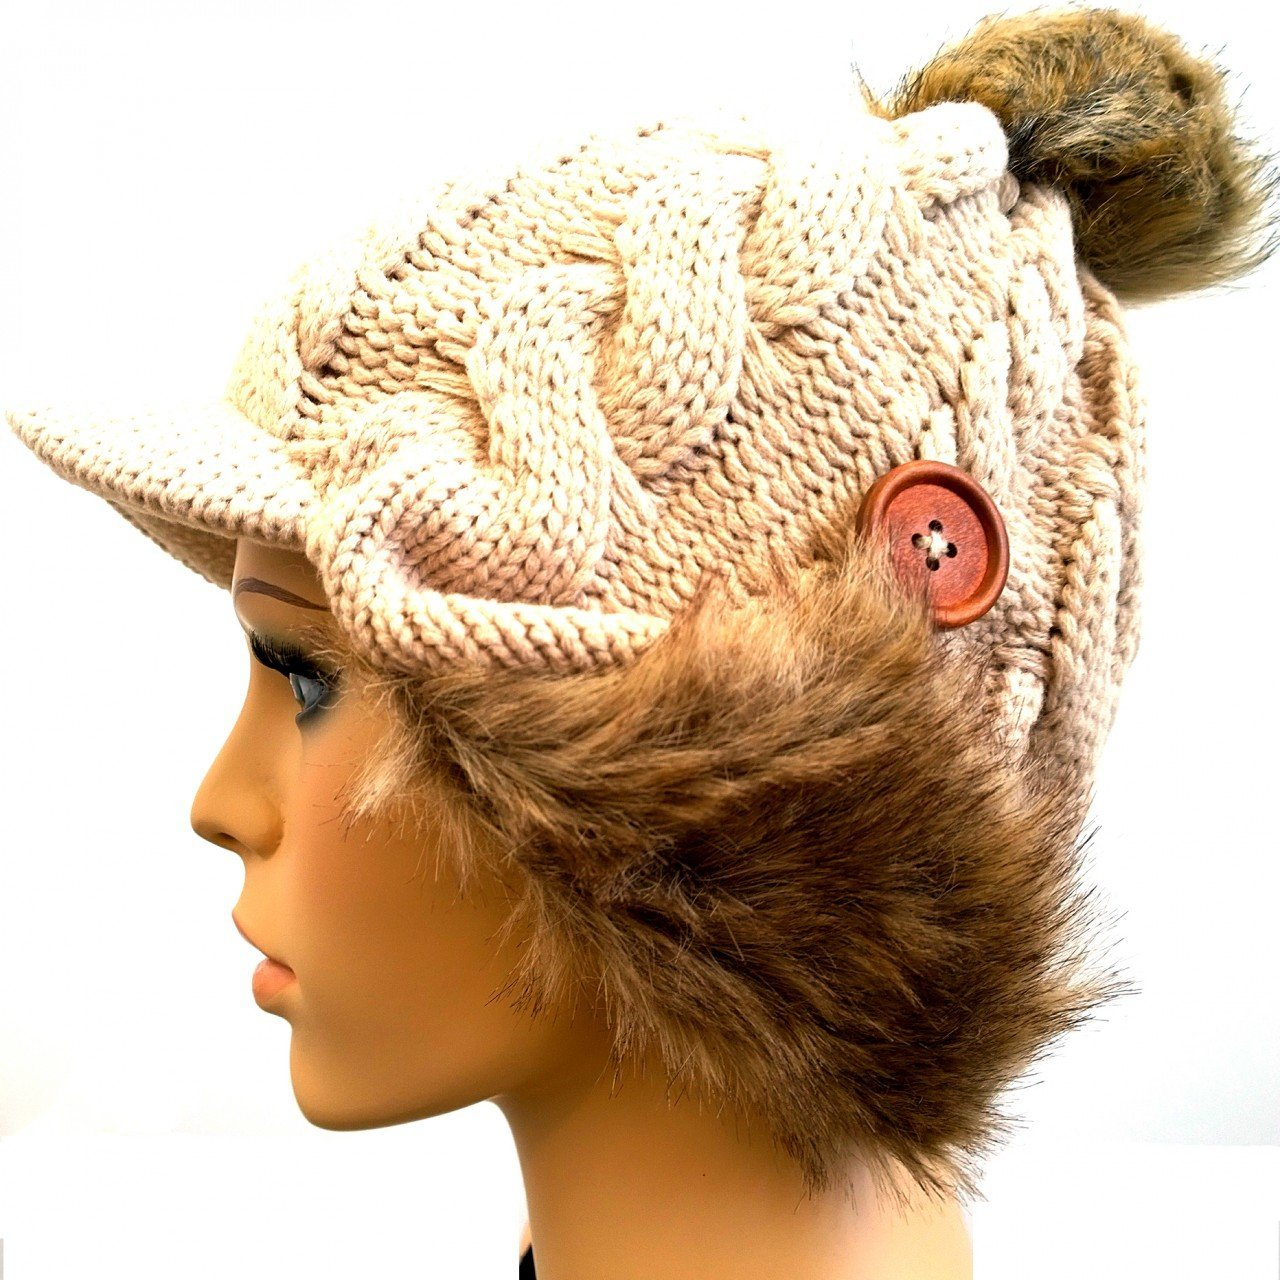 Stylish Winter Knit Hat with Faux Fur and Button Accent (Beige)